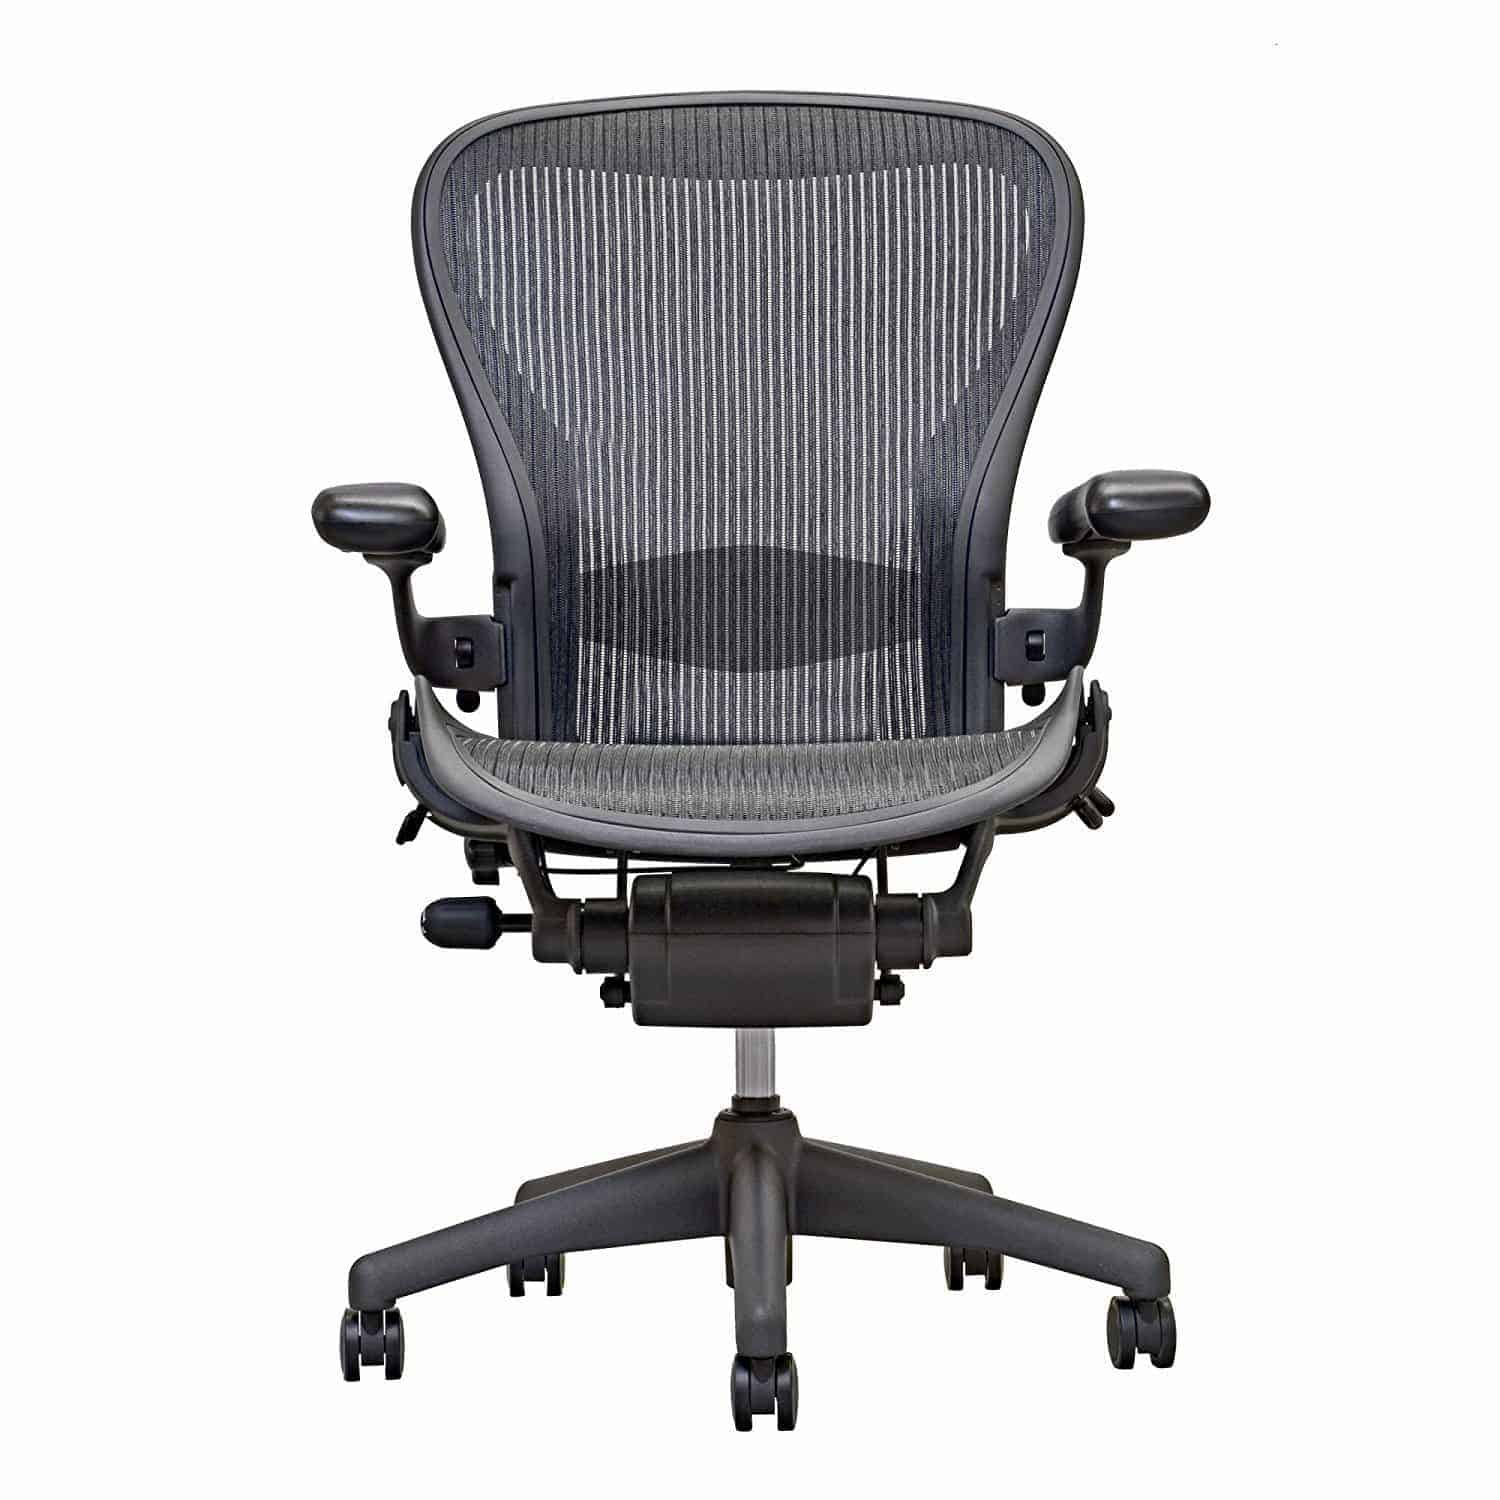 Best Gaming Chairs 2018 Don t Buy Before Reading This Gaming